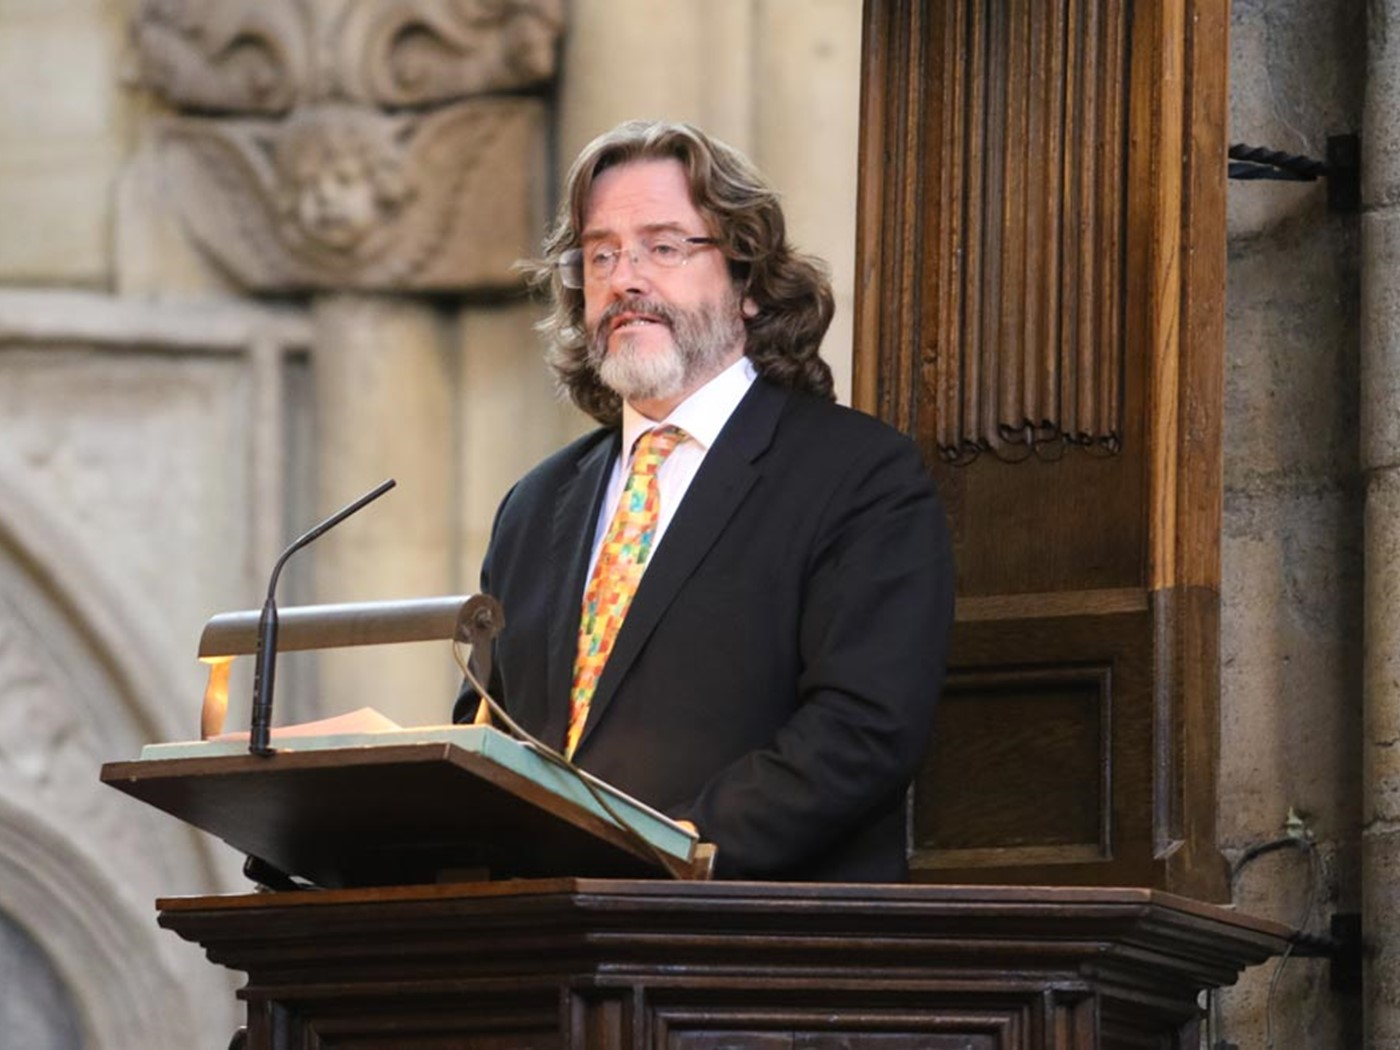 Gregory Doran, Artistic Director of the Royal Shakespeare Company, reads Ecclesiastes 3: 1-8